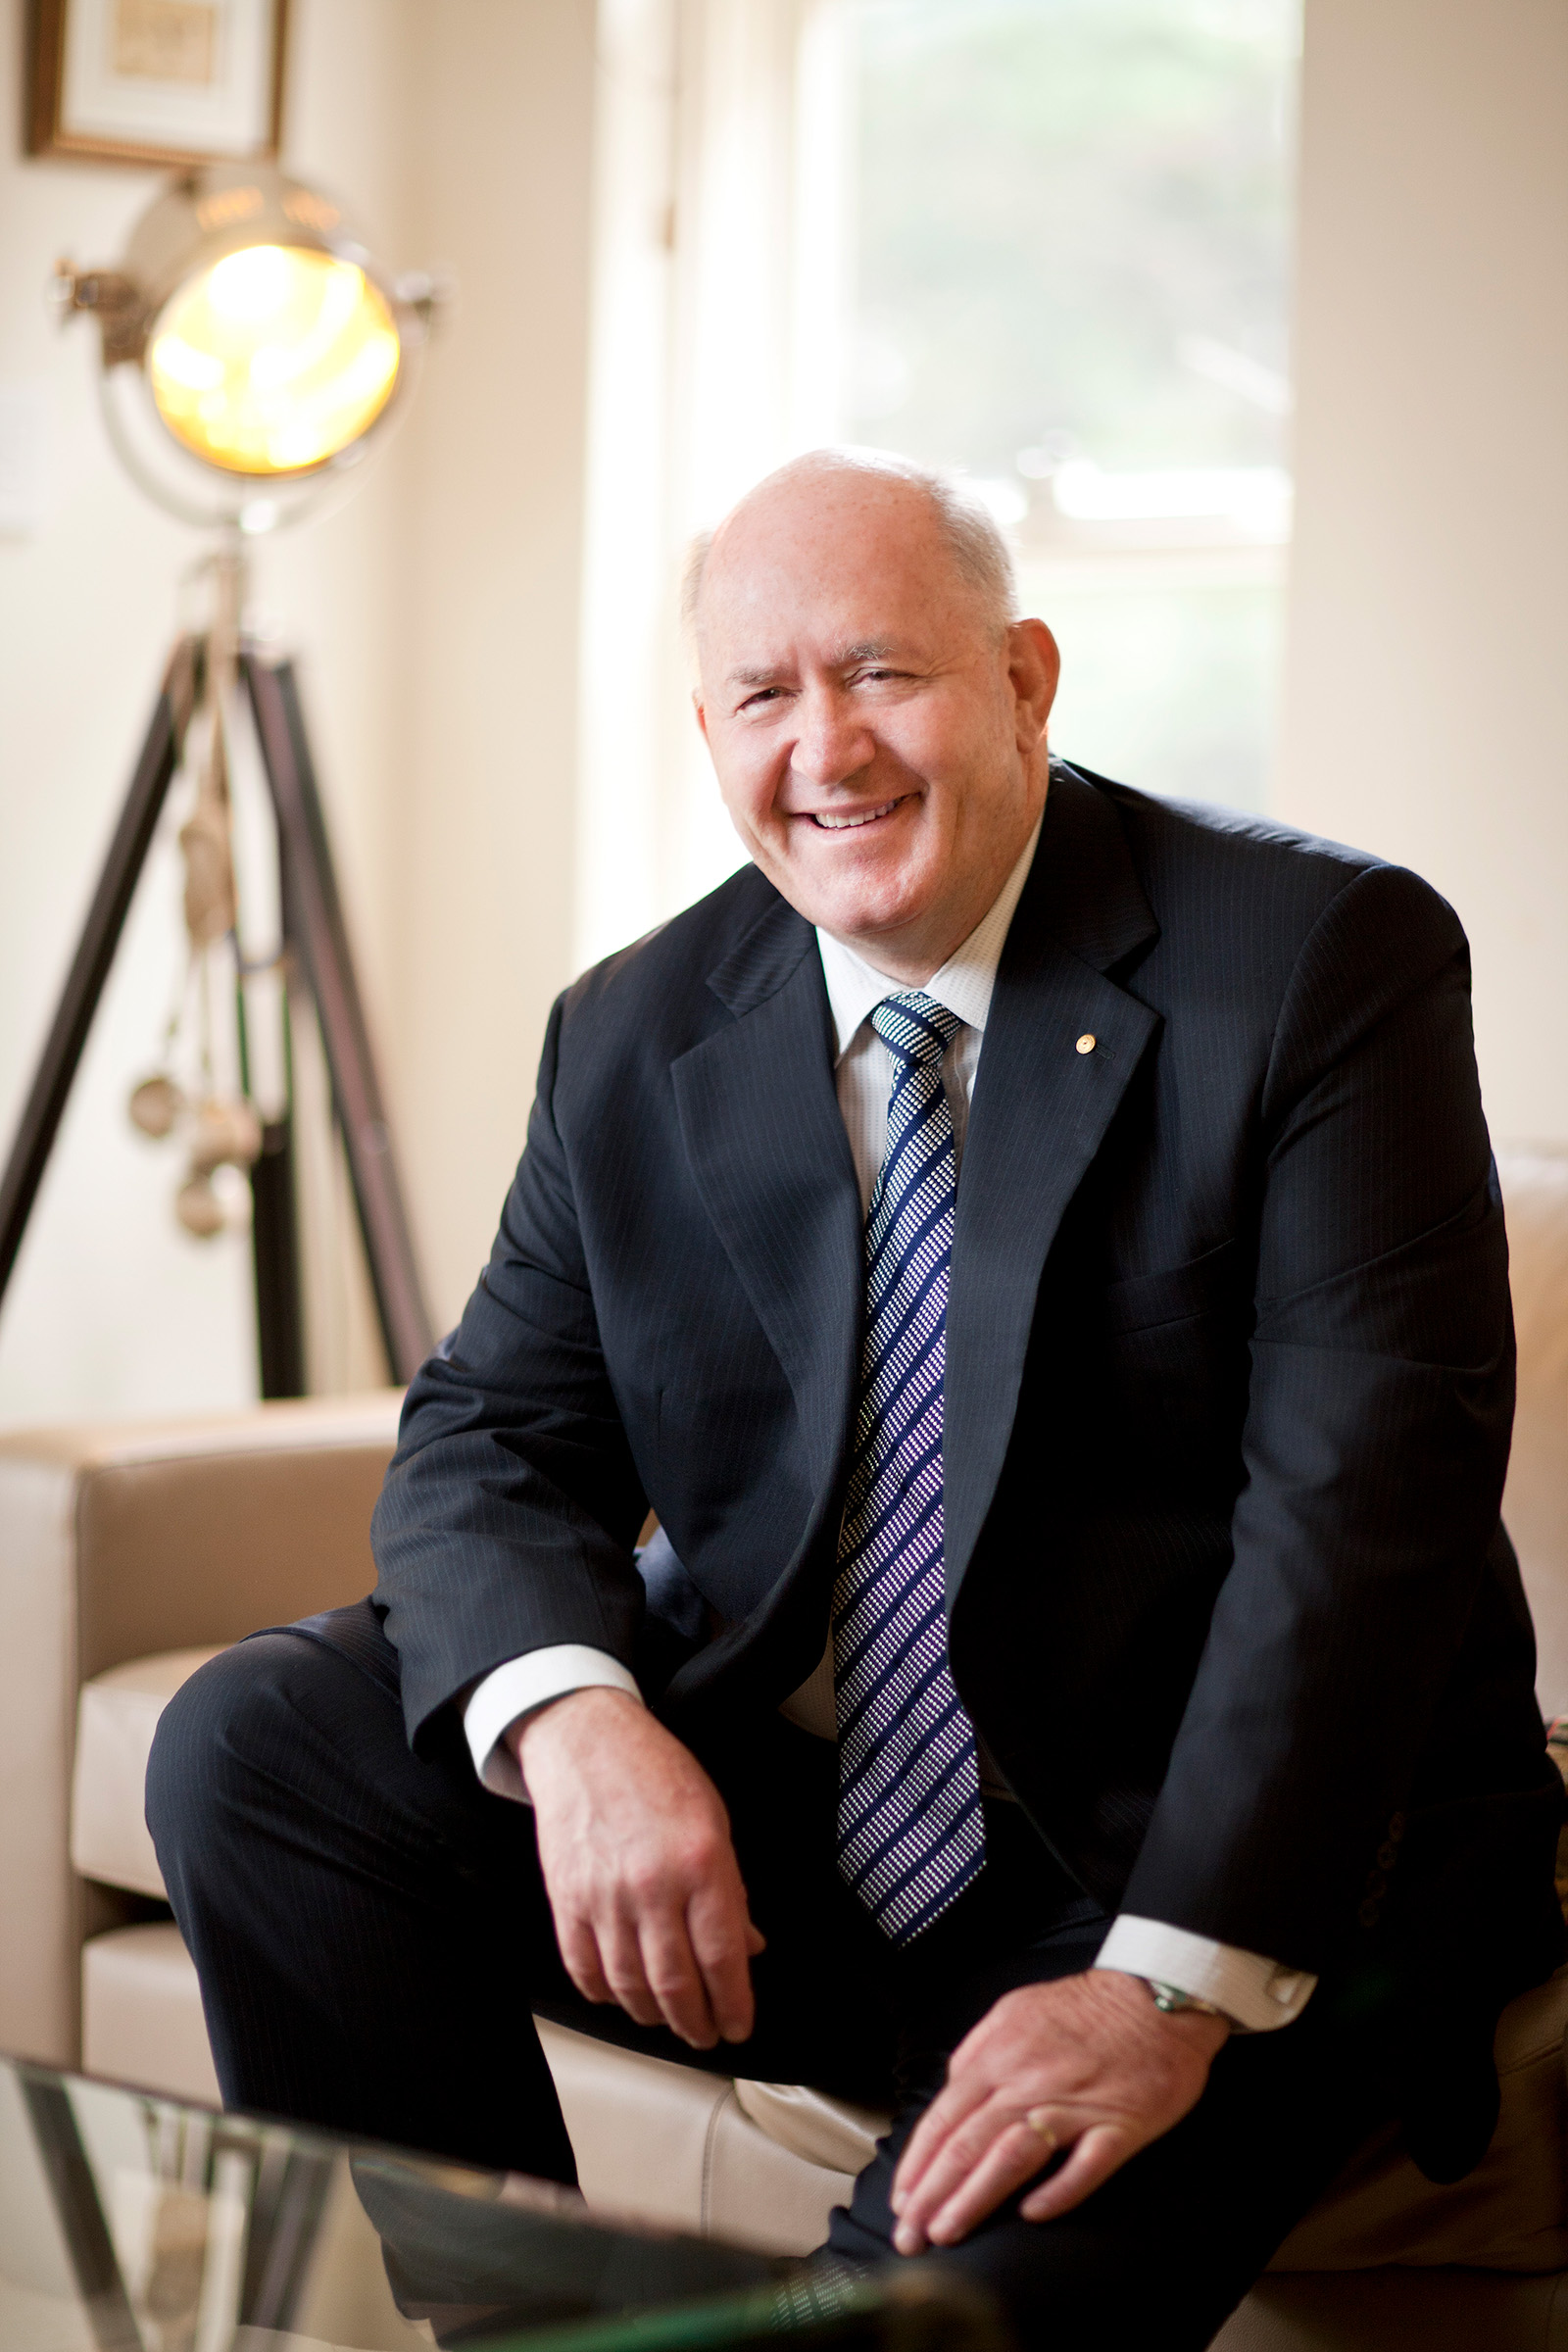 Editorial corporate location photography of a smiling Peter Cosgrove sitting on a couch in a living room